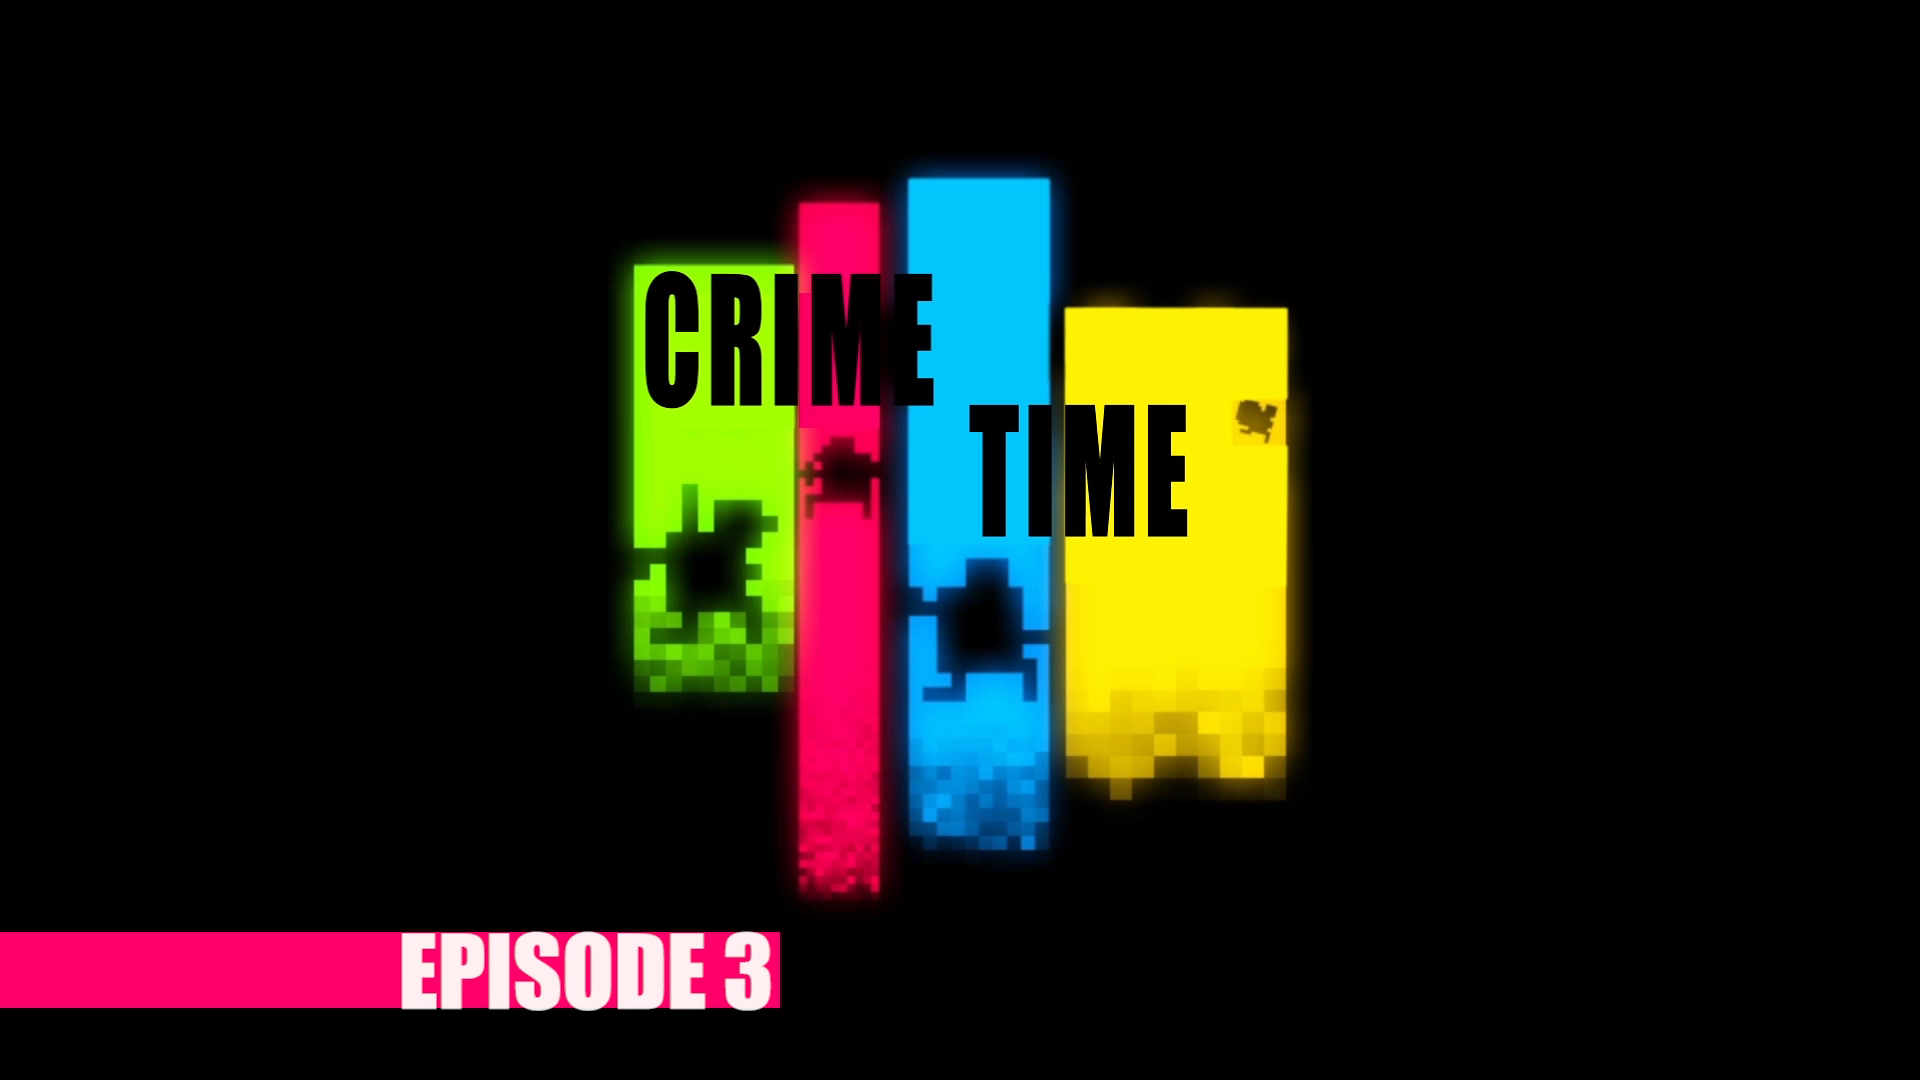 Crime Time Episode 3.jpg